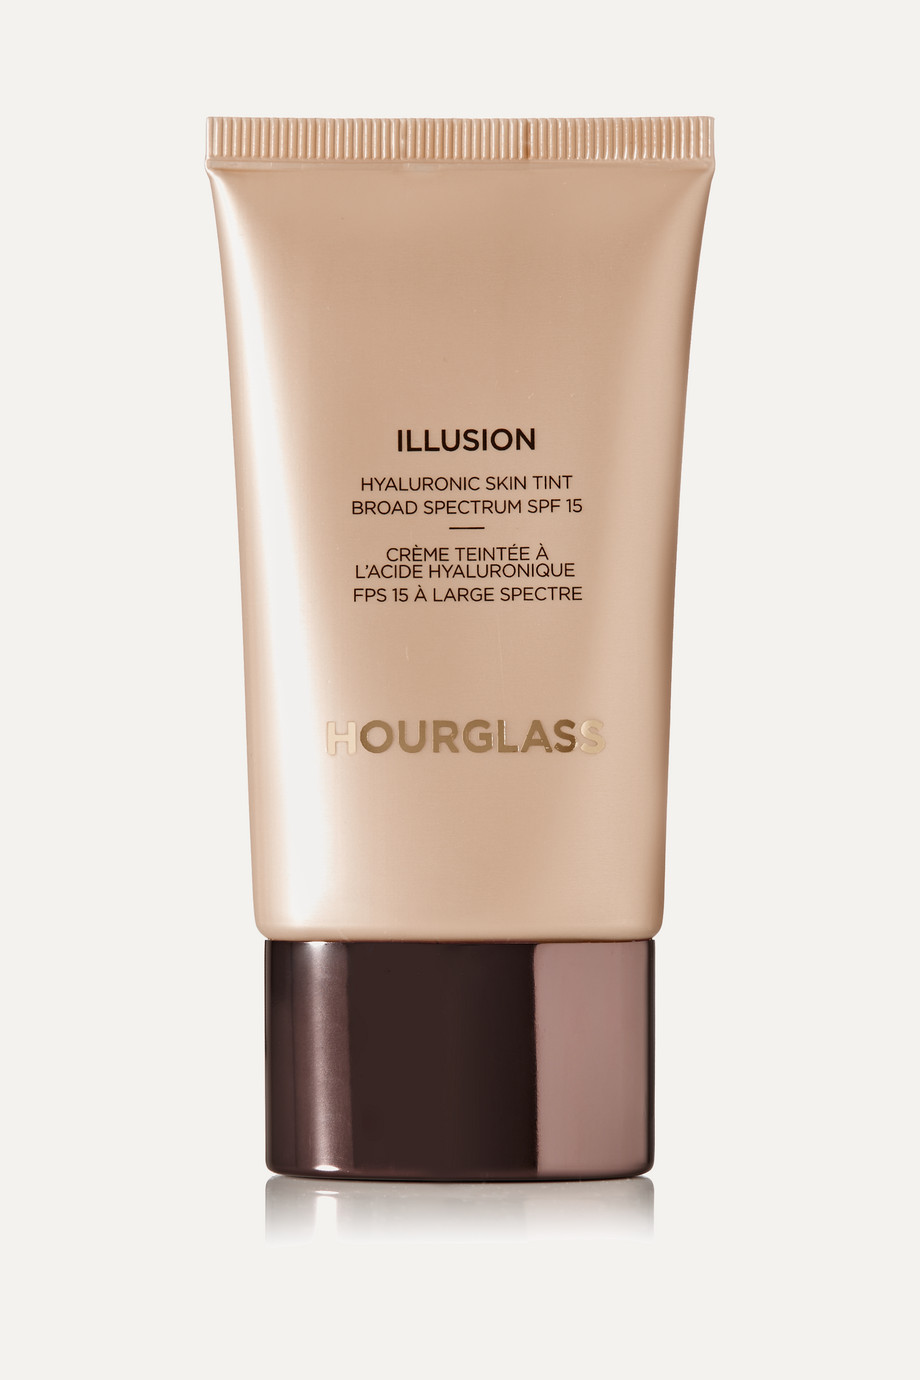 Hourglass Illusion® Hyaluronic Skin Tint SPF15 - Beige, 30ml